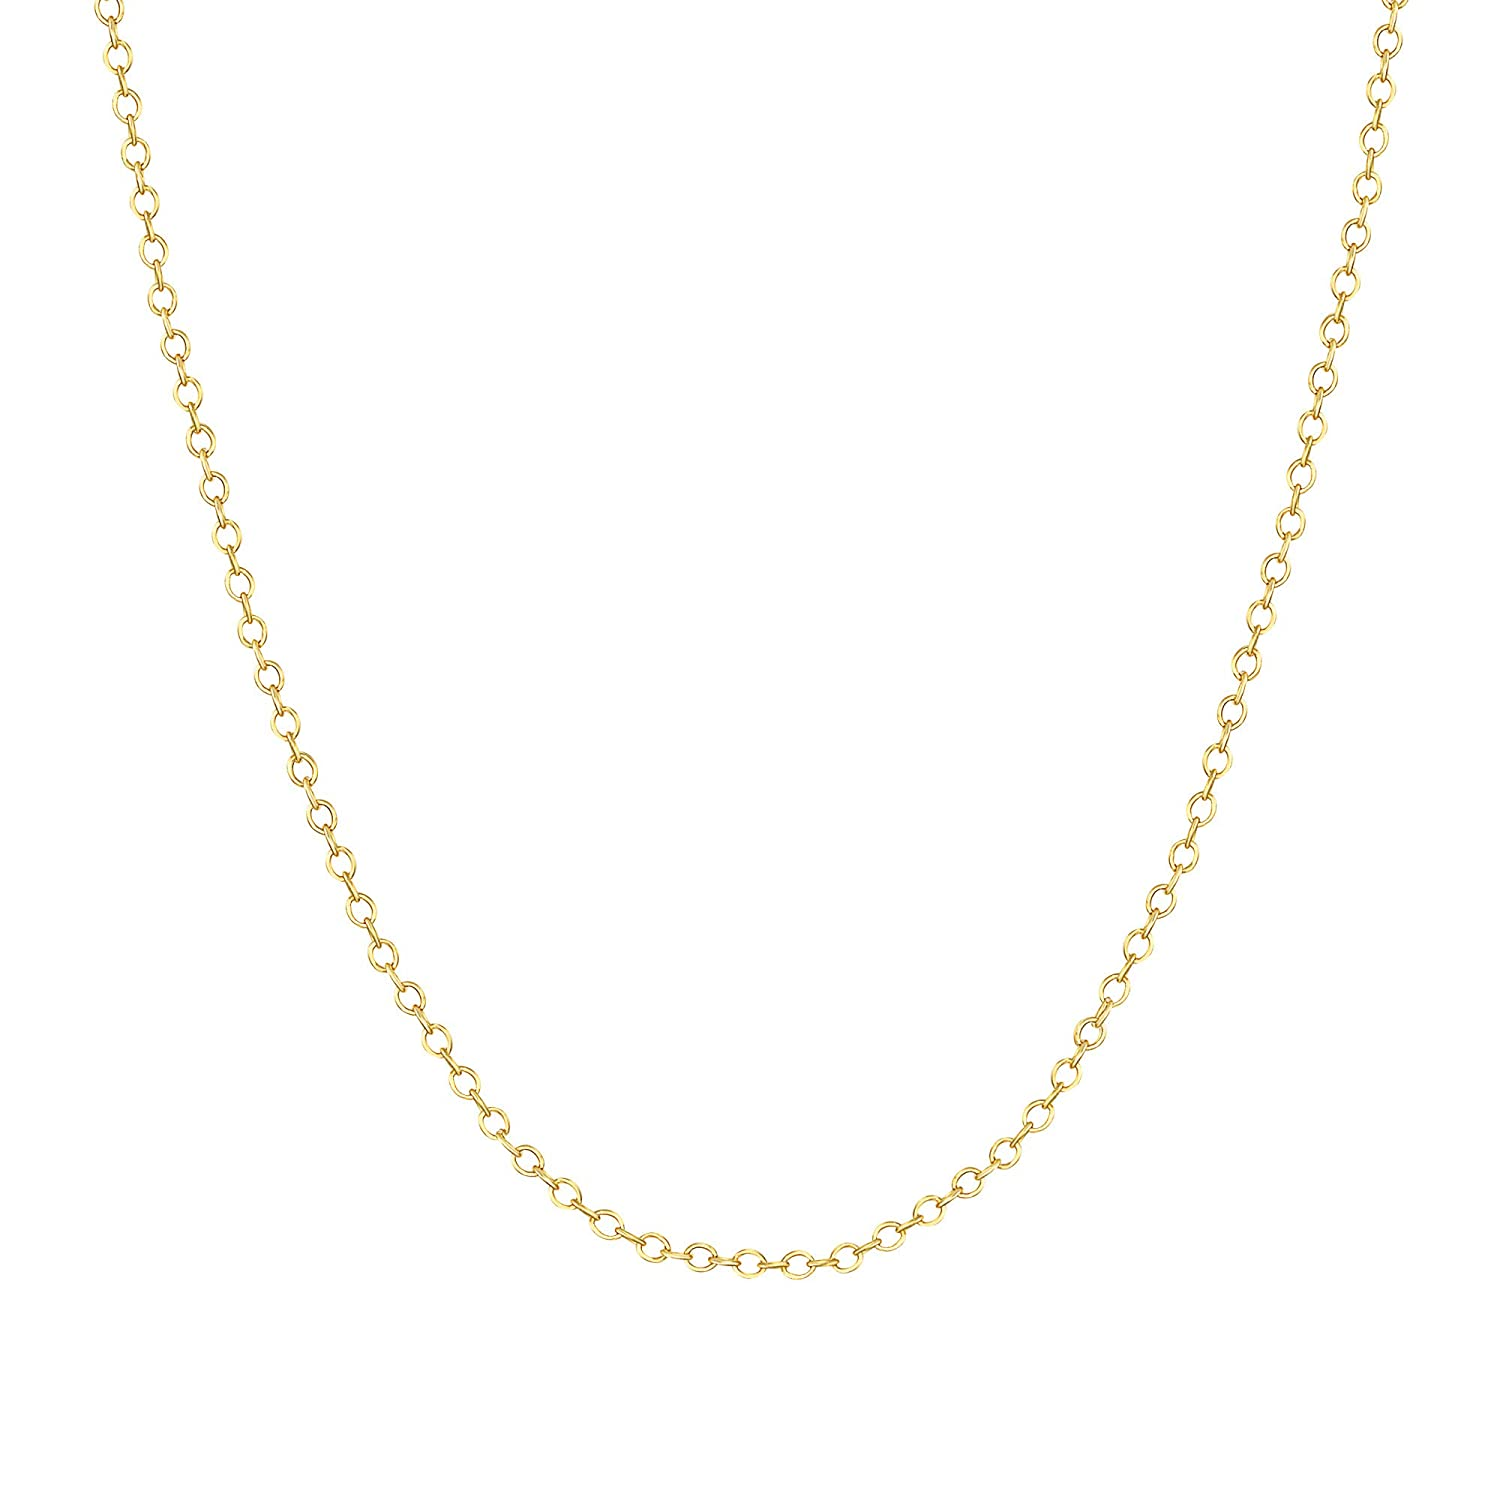 TousiAttar 14k Rose Gold-Filled Cable Chain Necklace Pendant 16-18 Inches 1.4 MM